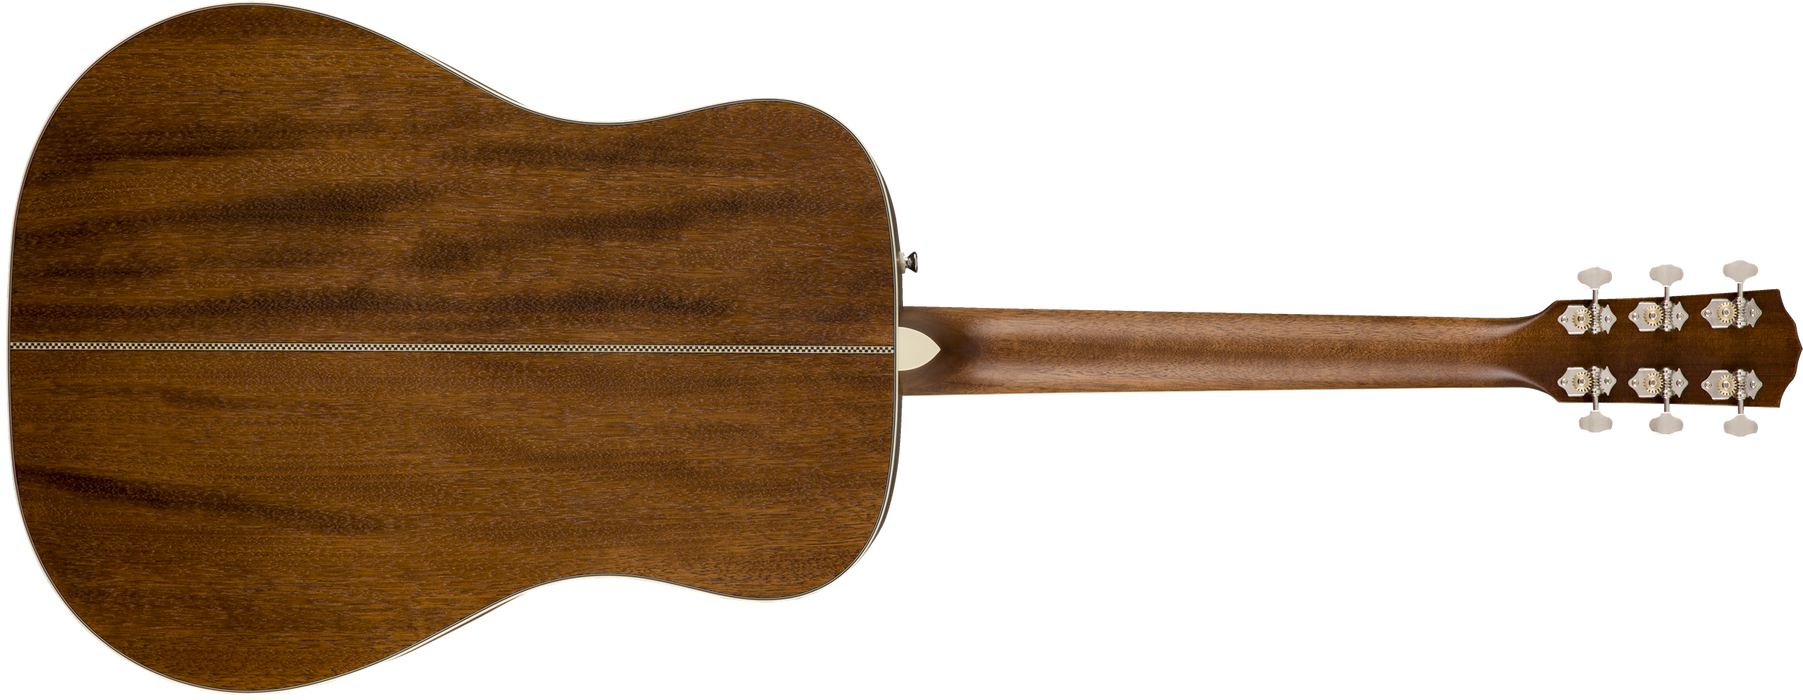 Fender PM-1 Dreadnought Left-Handed Ovangkol Fingerboard All-Mahogany Acoustic Guitar